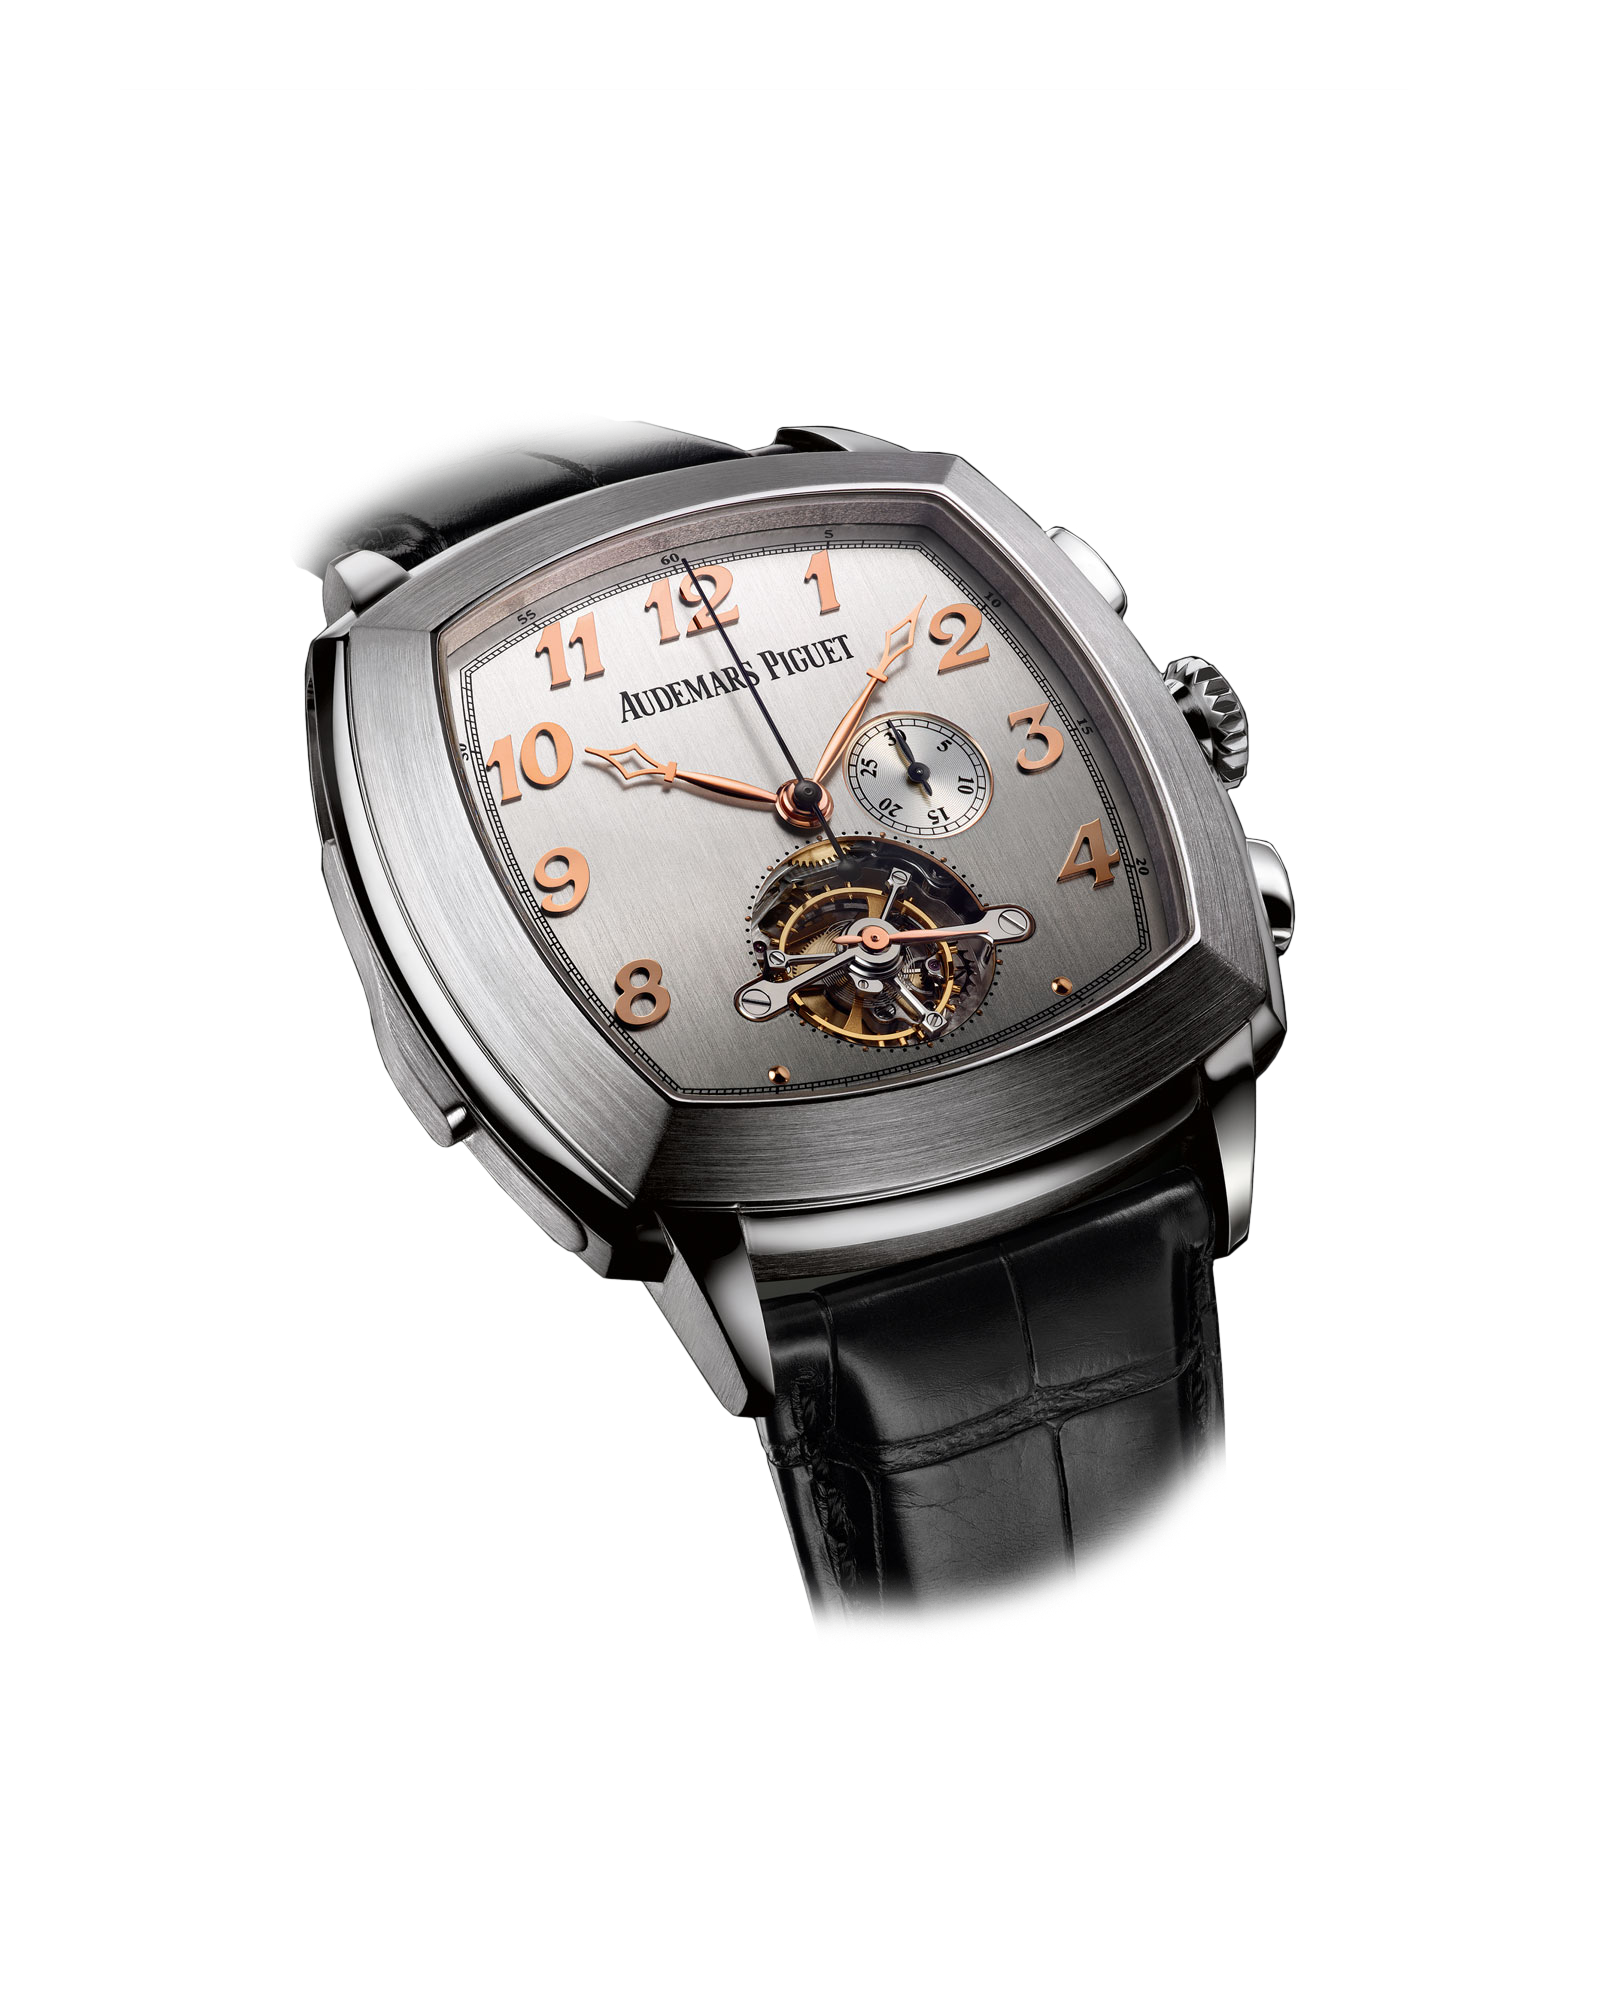 Audemars Piguet MINUTE REPEATER TOURBILLON CHRONOGRAPH 26564IC.OO.D002CR.01